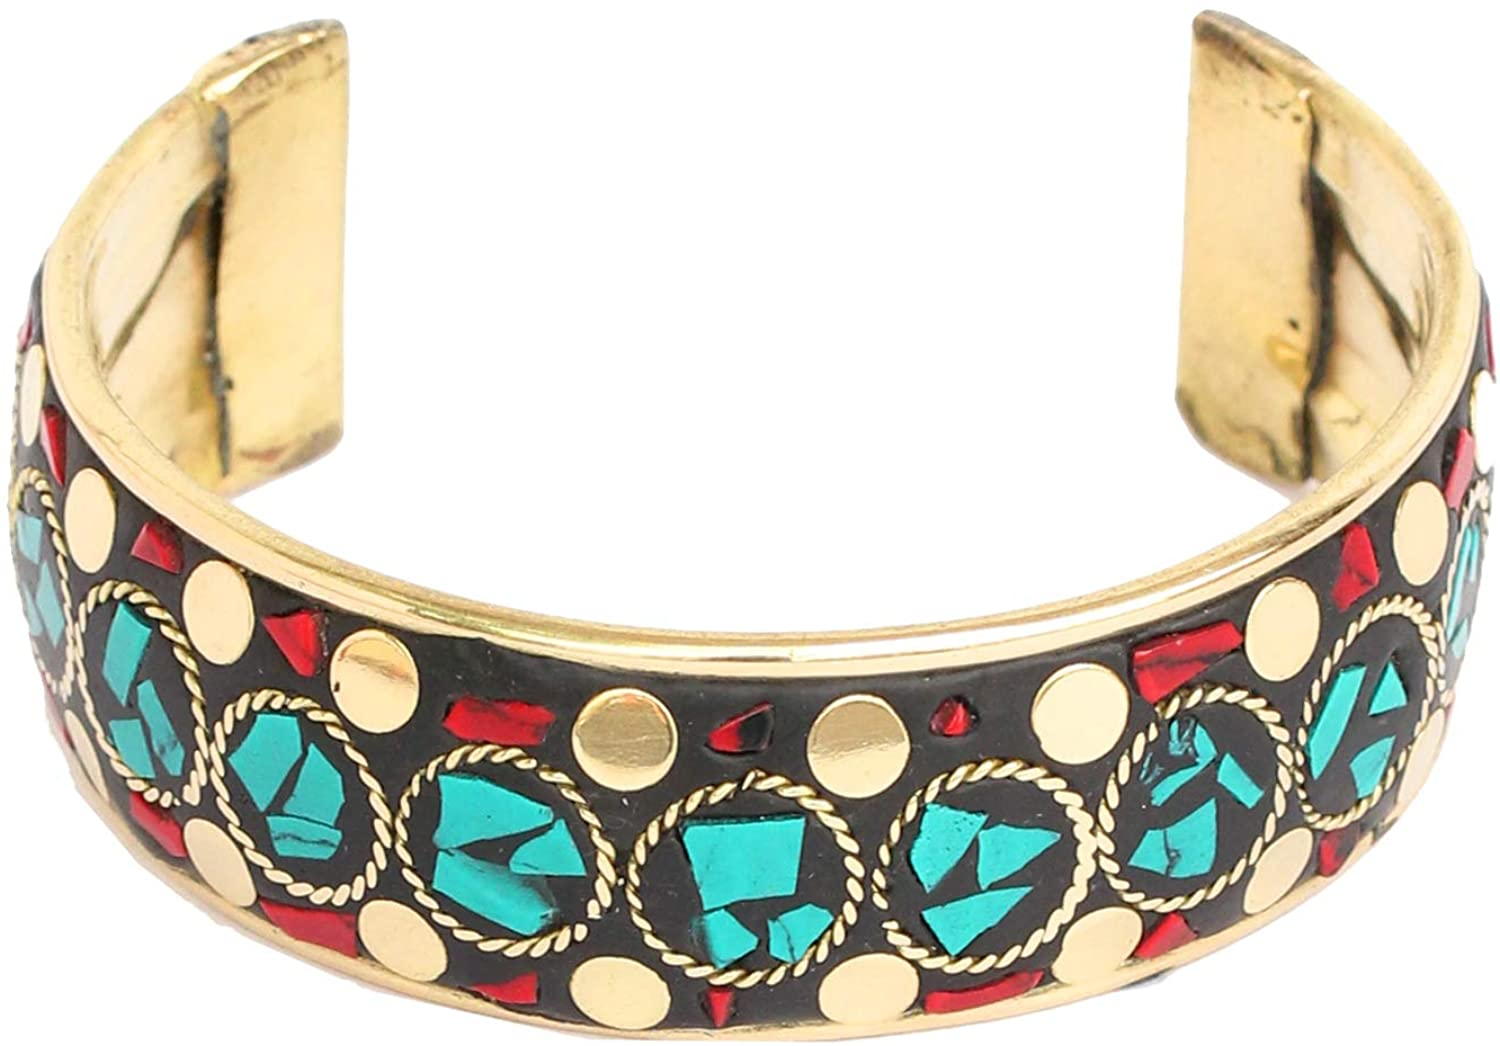 Touchstone Bollywood Beautifully Tempered Hand Beaten Designer Jewelry Torque Cuff Bracelet in Antique Tone for Women.